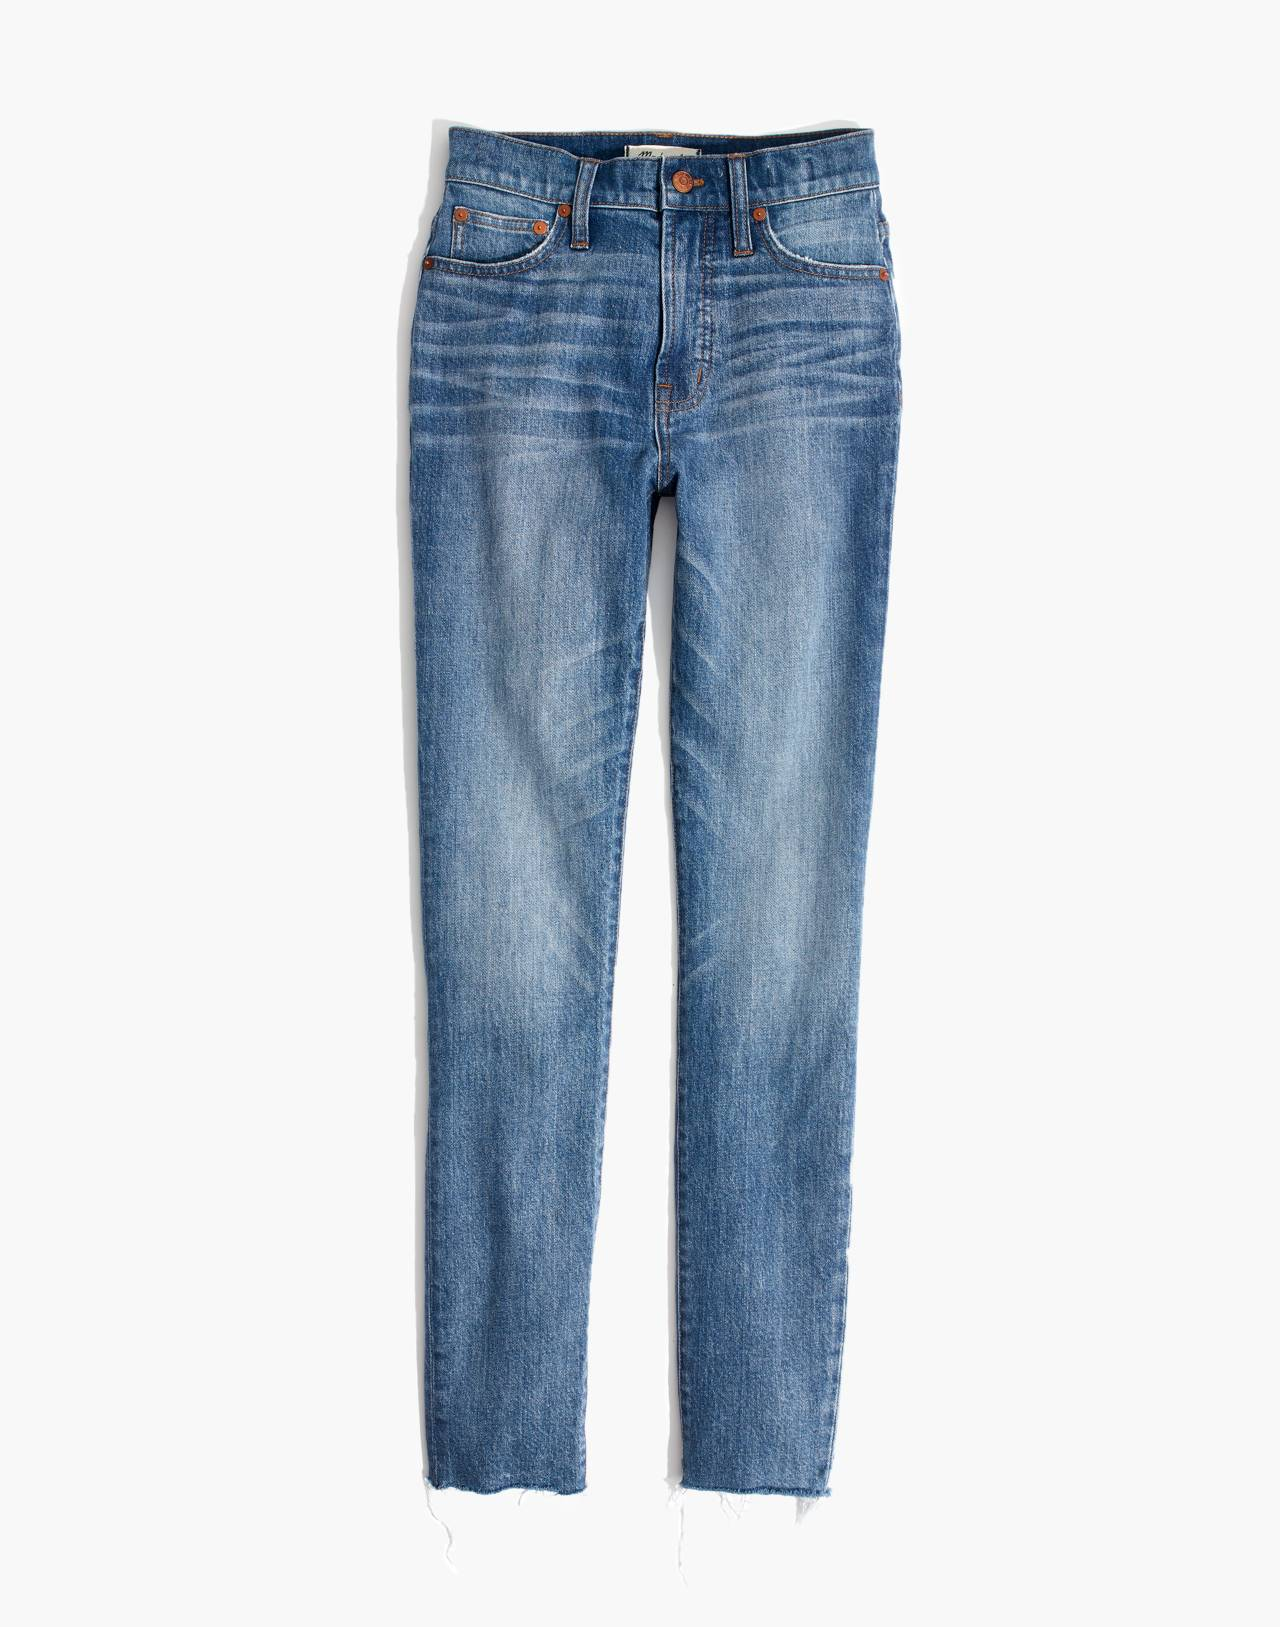 The Tall Perfect Vintage Jean: Comfort Stretch Edition in velera wash image 4